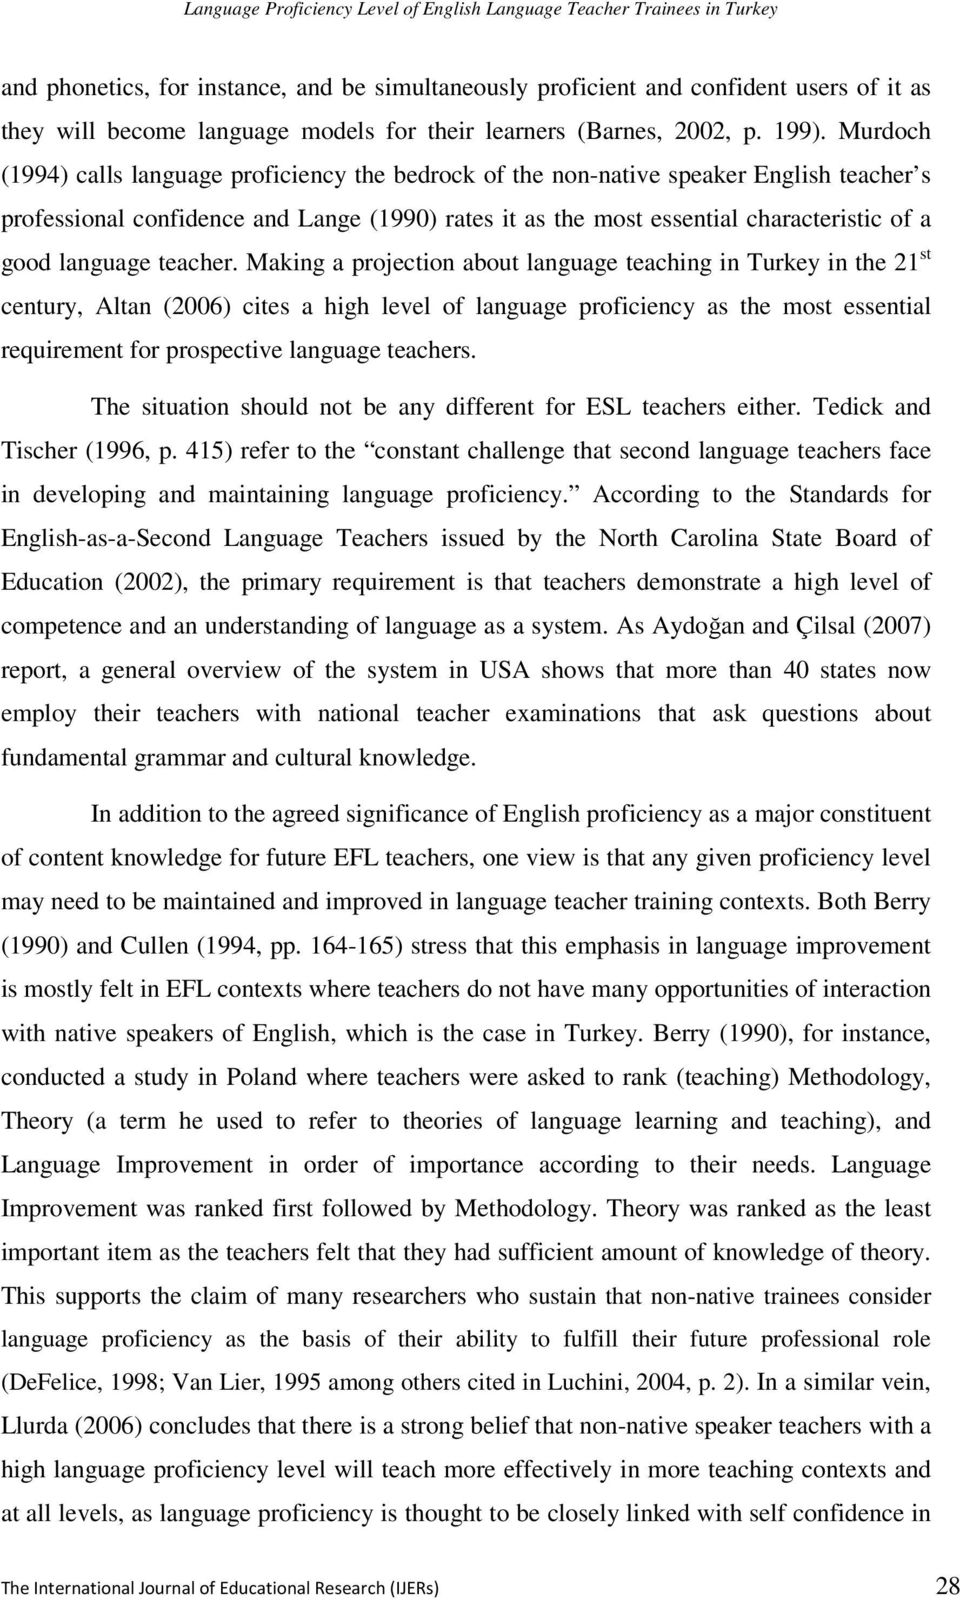 Murdoch (1994) calls language proficiency the bedrock of the non-native speaker English teacher s professional confidence and Lange (1990) rates it as the most essential characteristic of a good